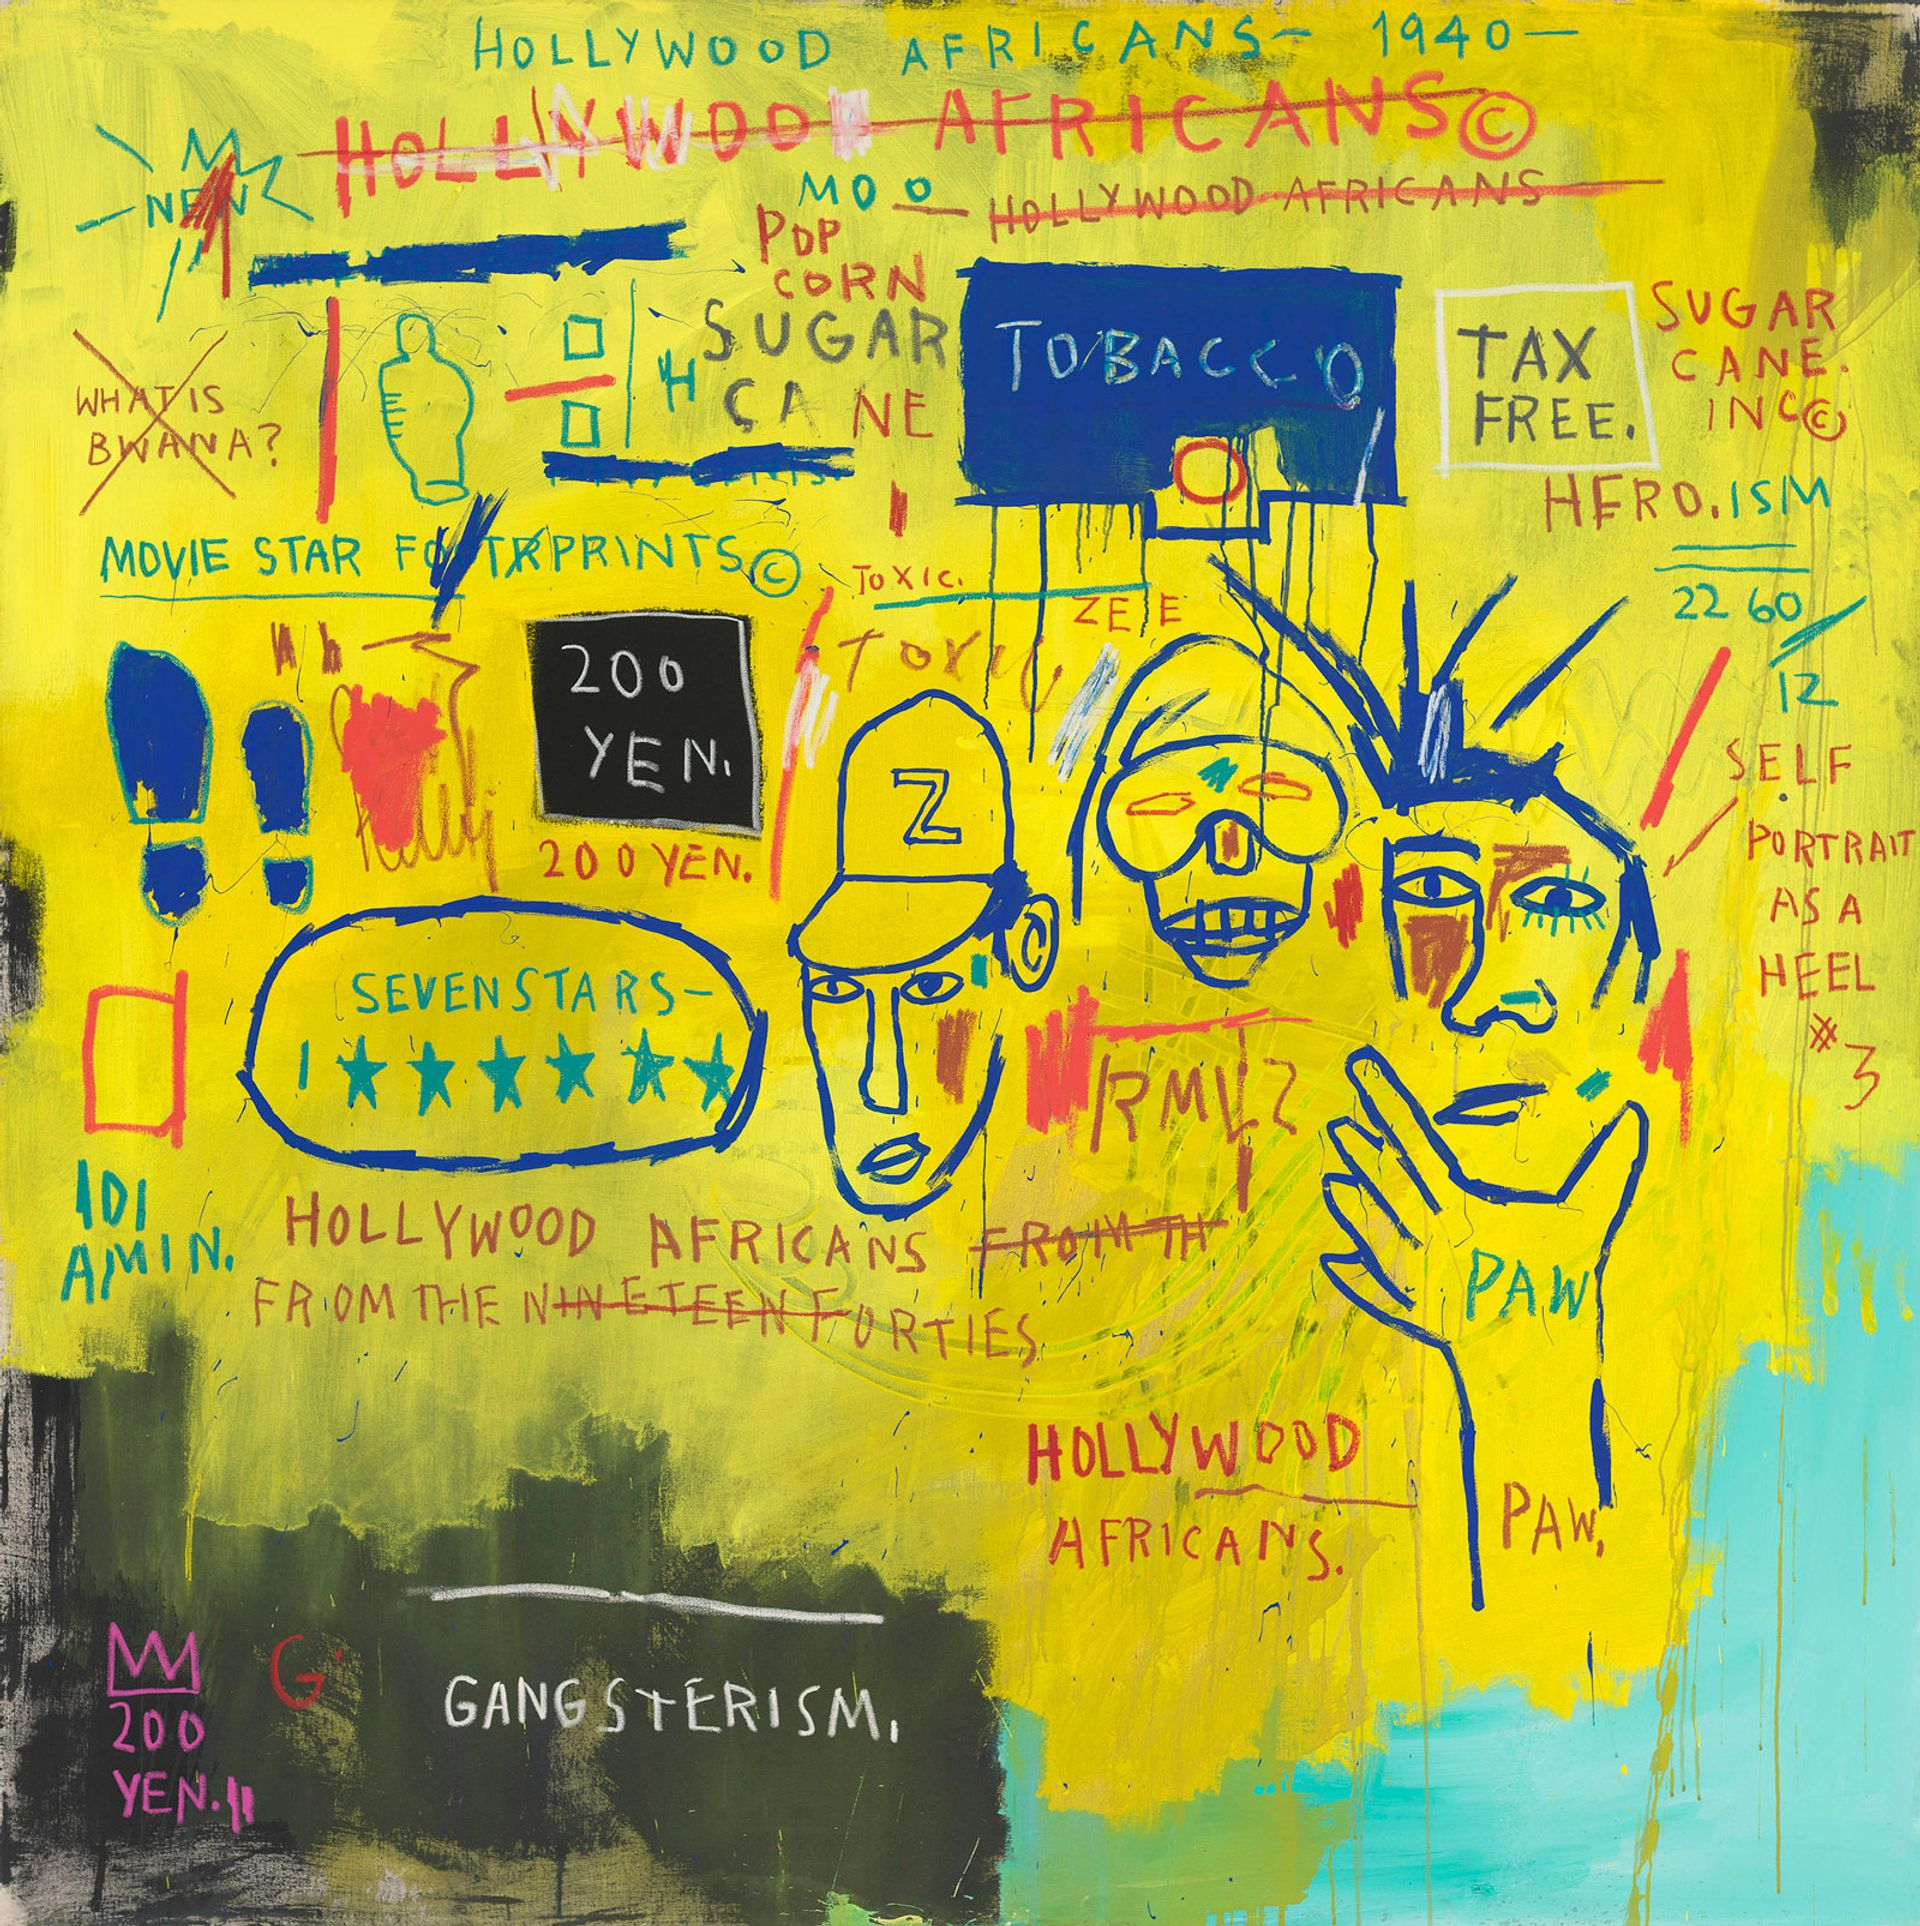 Hollywood Africans (1983) by Jean-Michel Basquiat includes portraits of fellow artists Rammellzee and Toxic © Estate of Jean-Michel Basquiat. Licensed by Artestar, New York